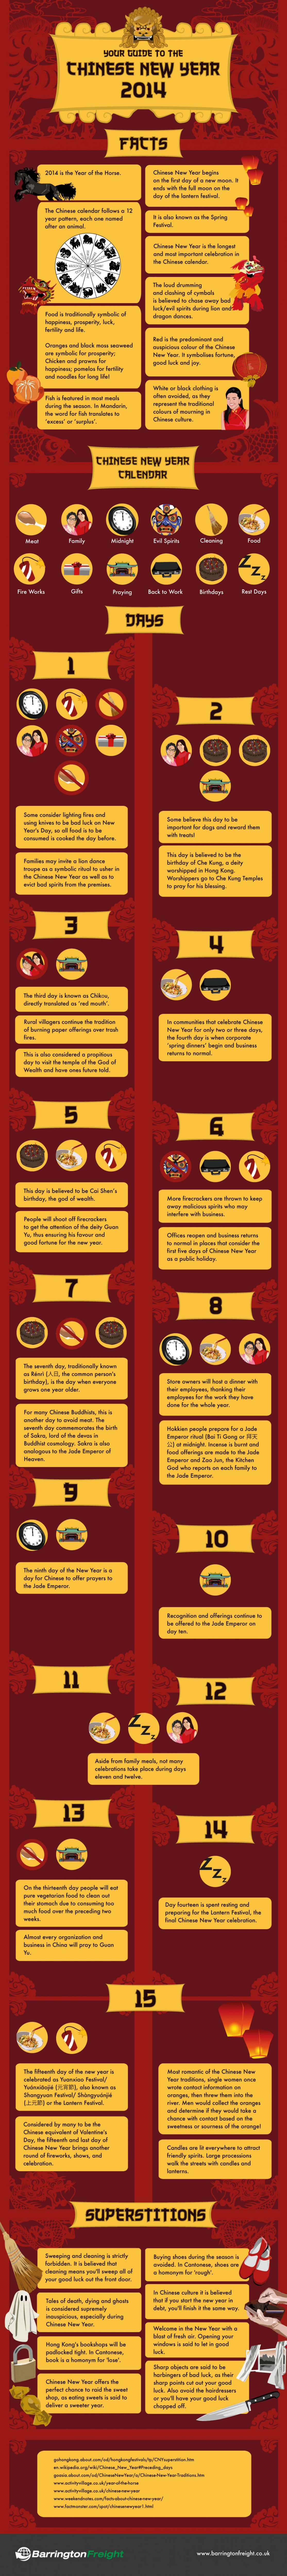 01 your-guide-to-the-chinese-new-year-2014_52e68c853d302_w1500